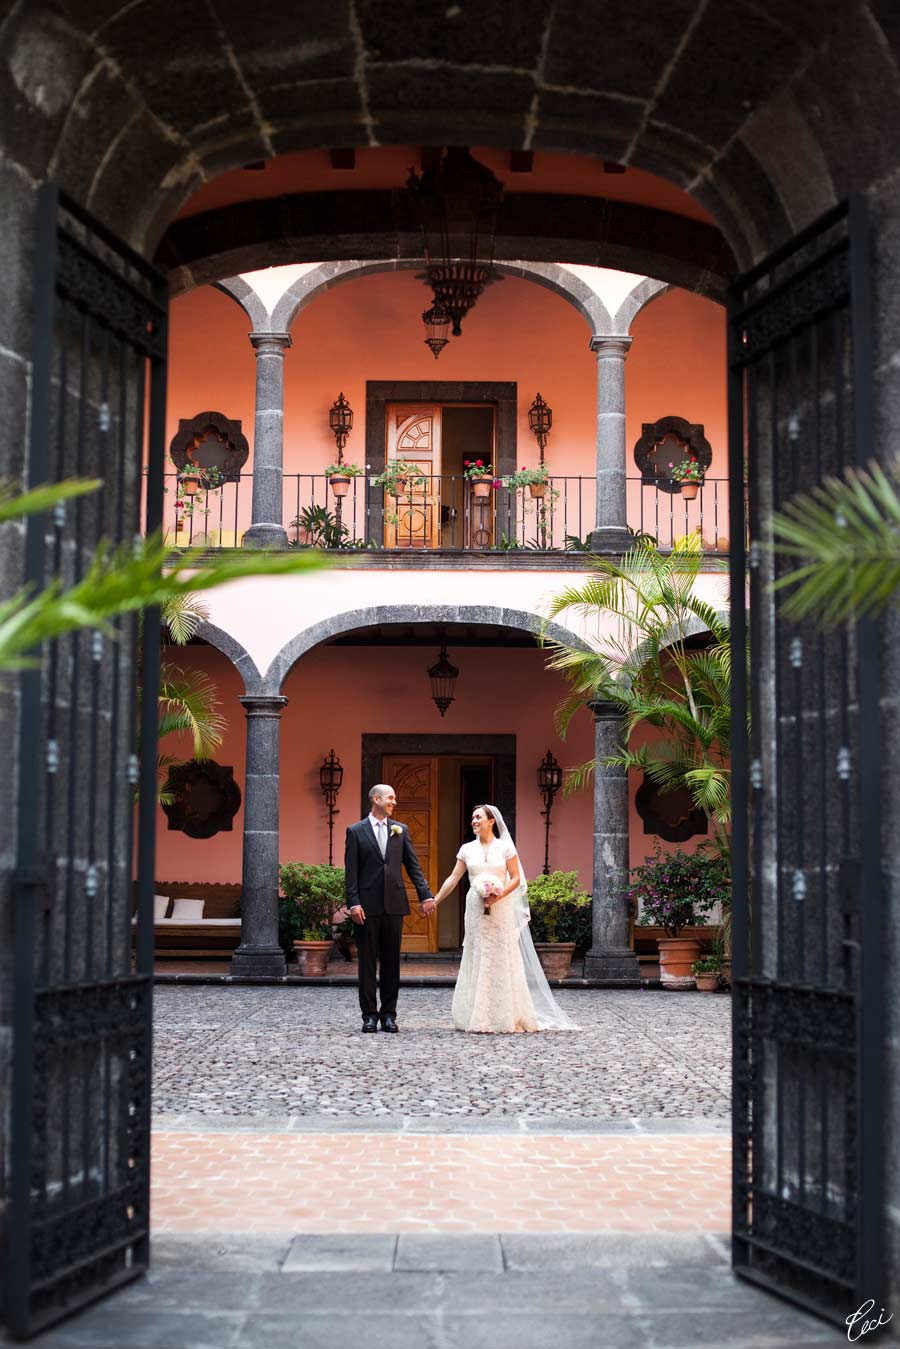 Our Muse Elegant Mexican Wedding Be Inspired By Xochitl And Mark S Elegant Mexican Wedding